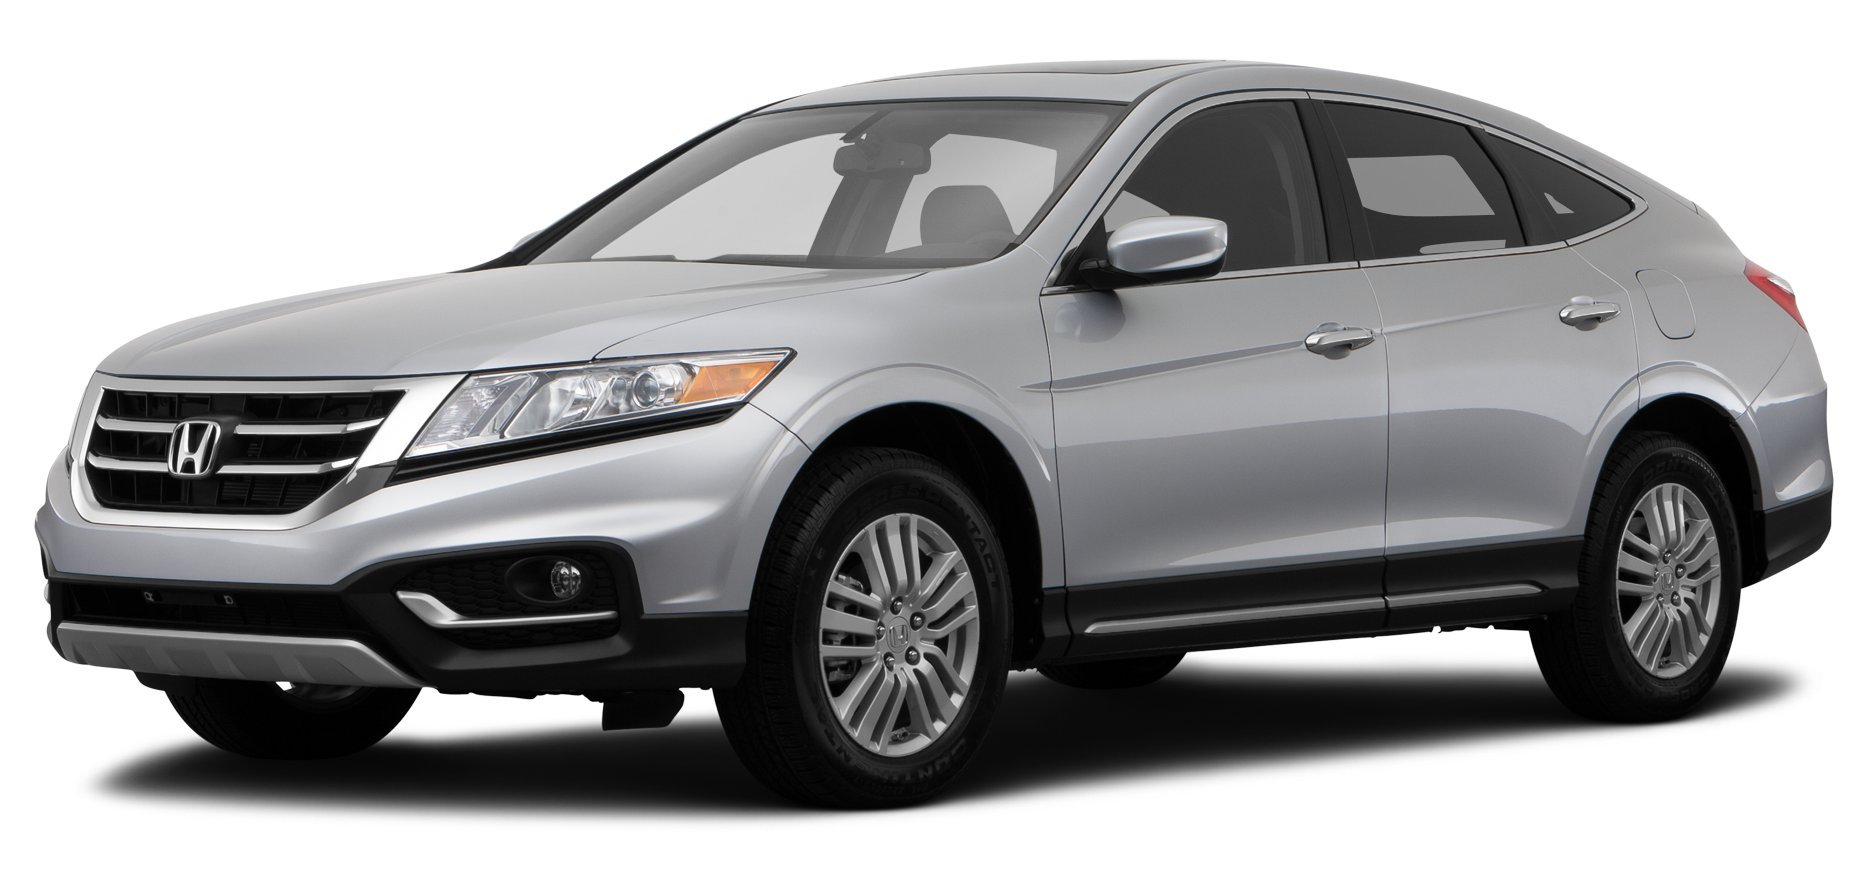 as based in also top honda cars to accord was tl speed acura introduced related sedan on familiar the developed crosstour below review crossover slot it a